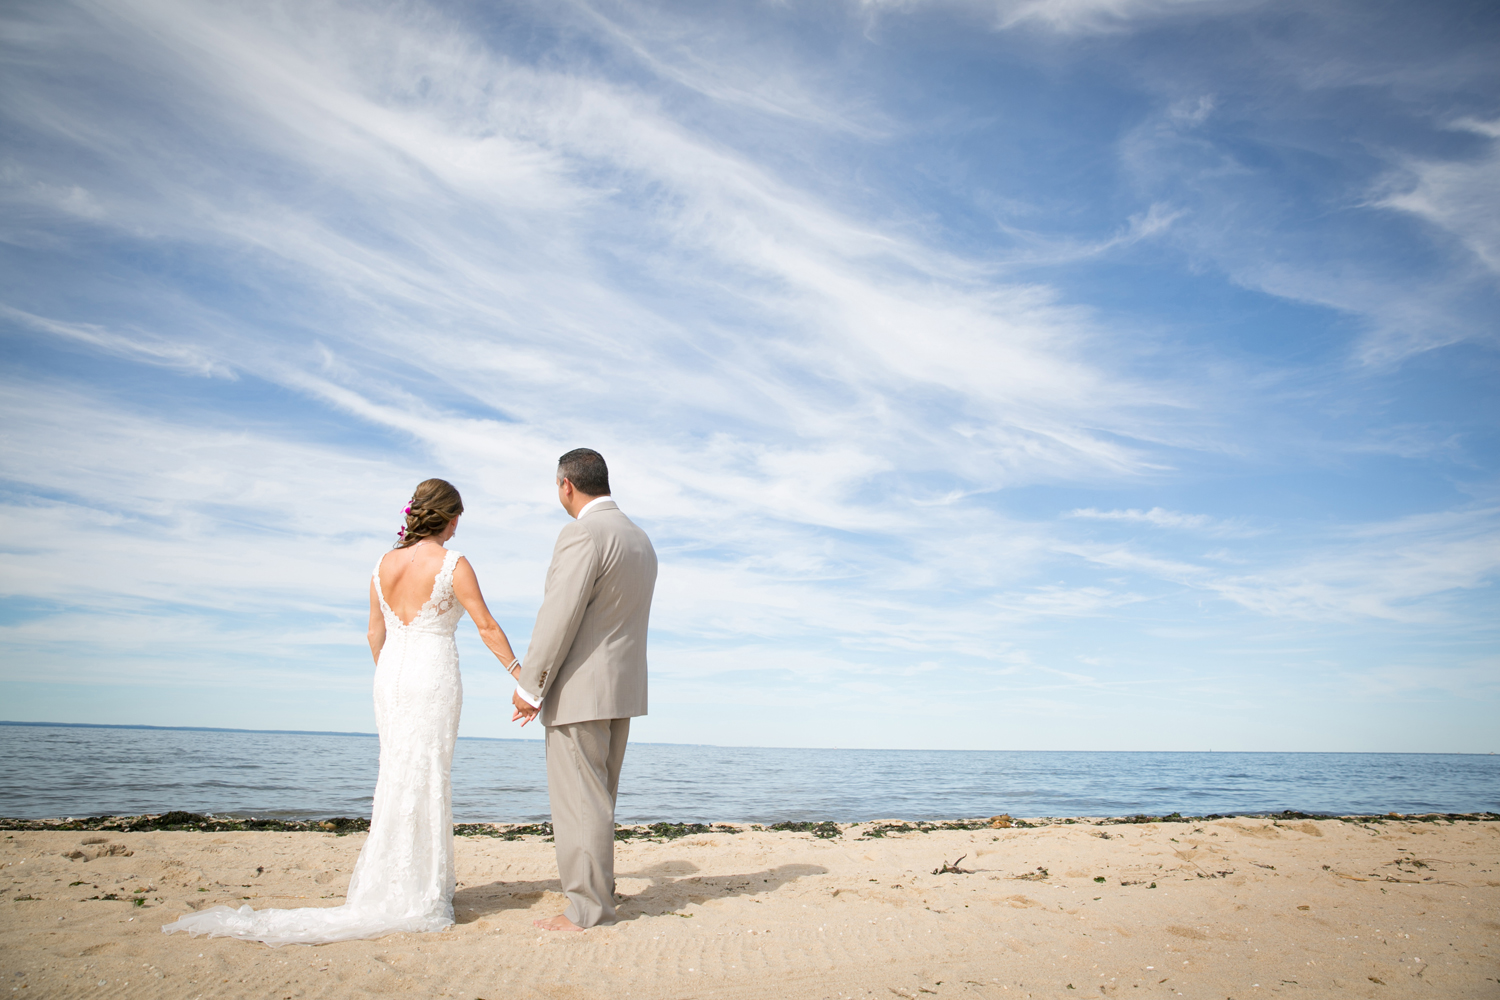 NJ_Beach_Wedding_10.jpg